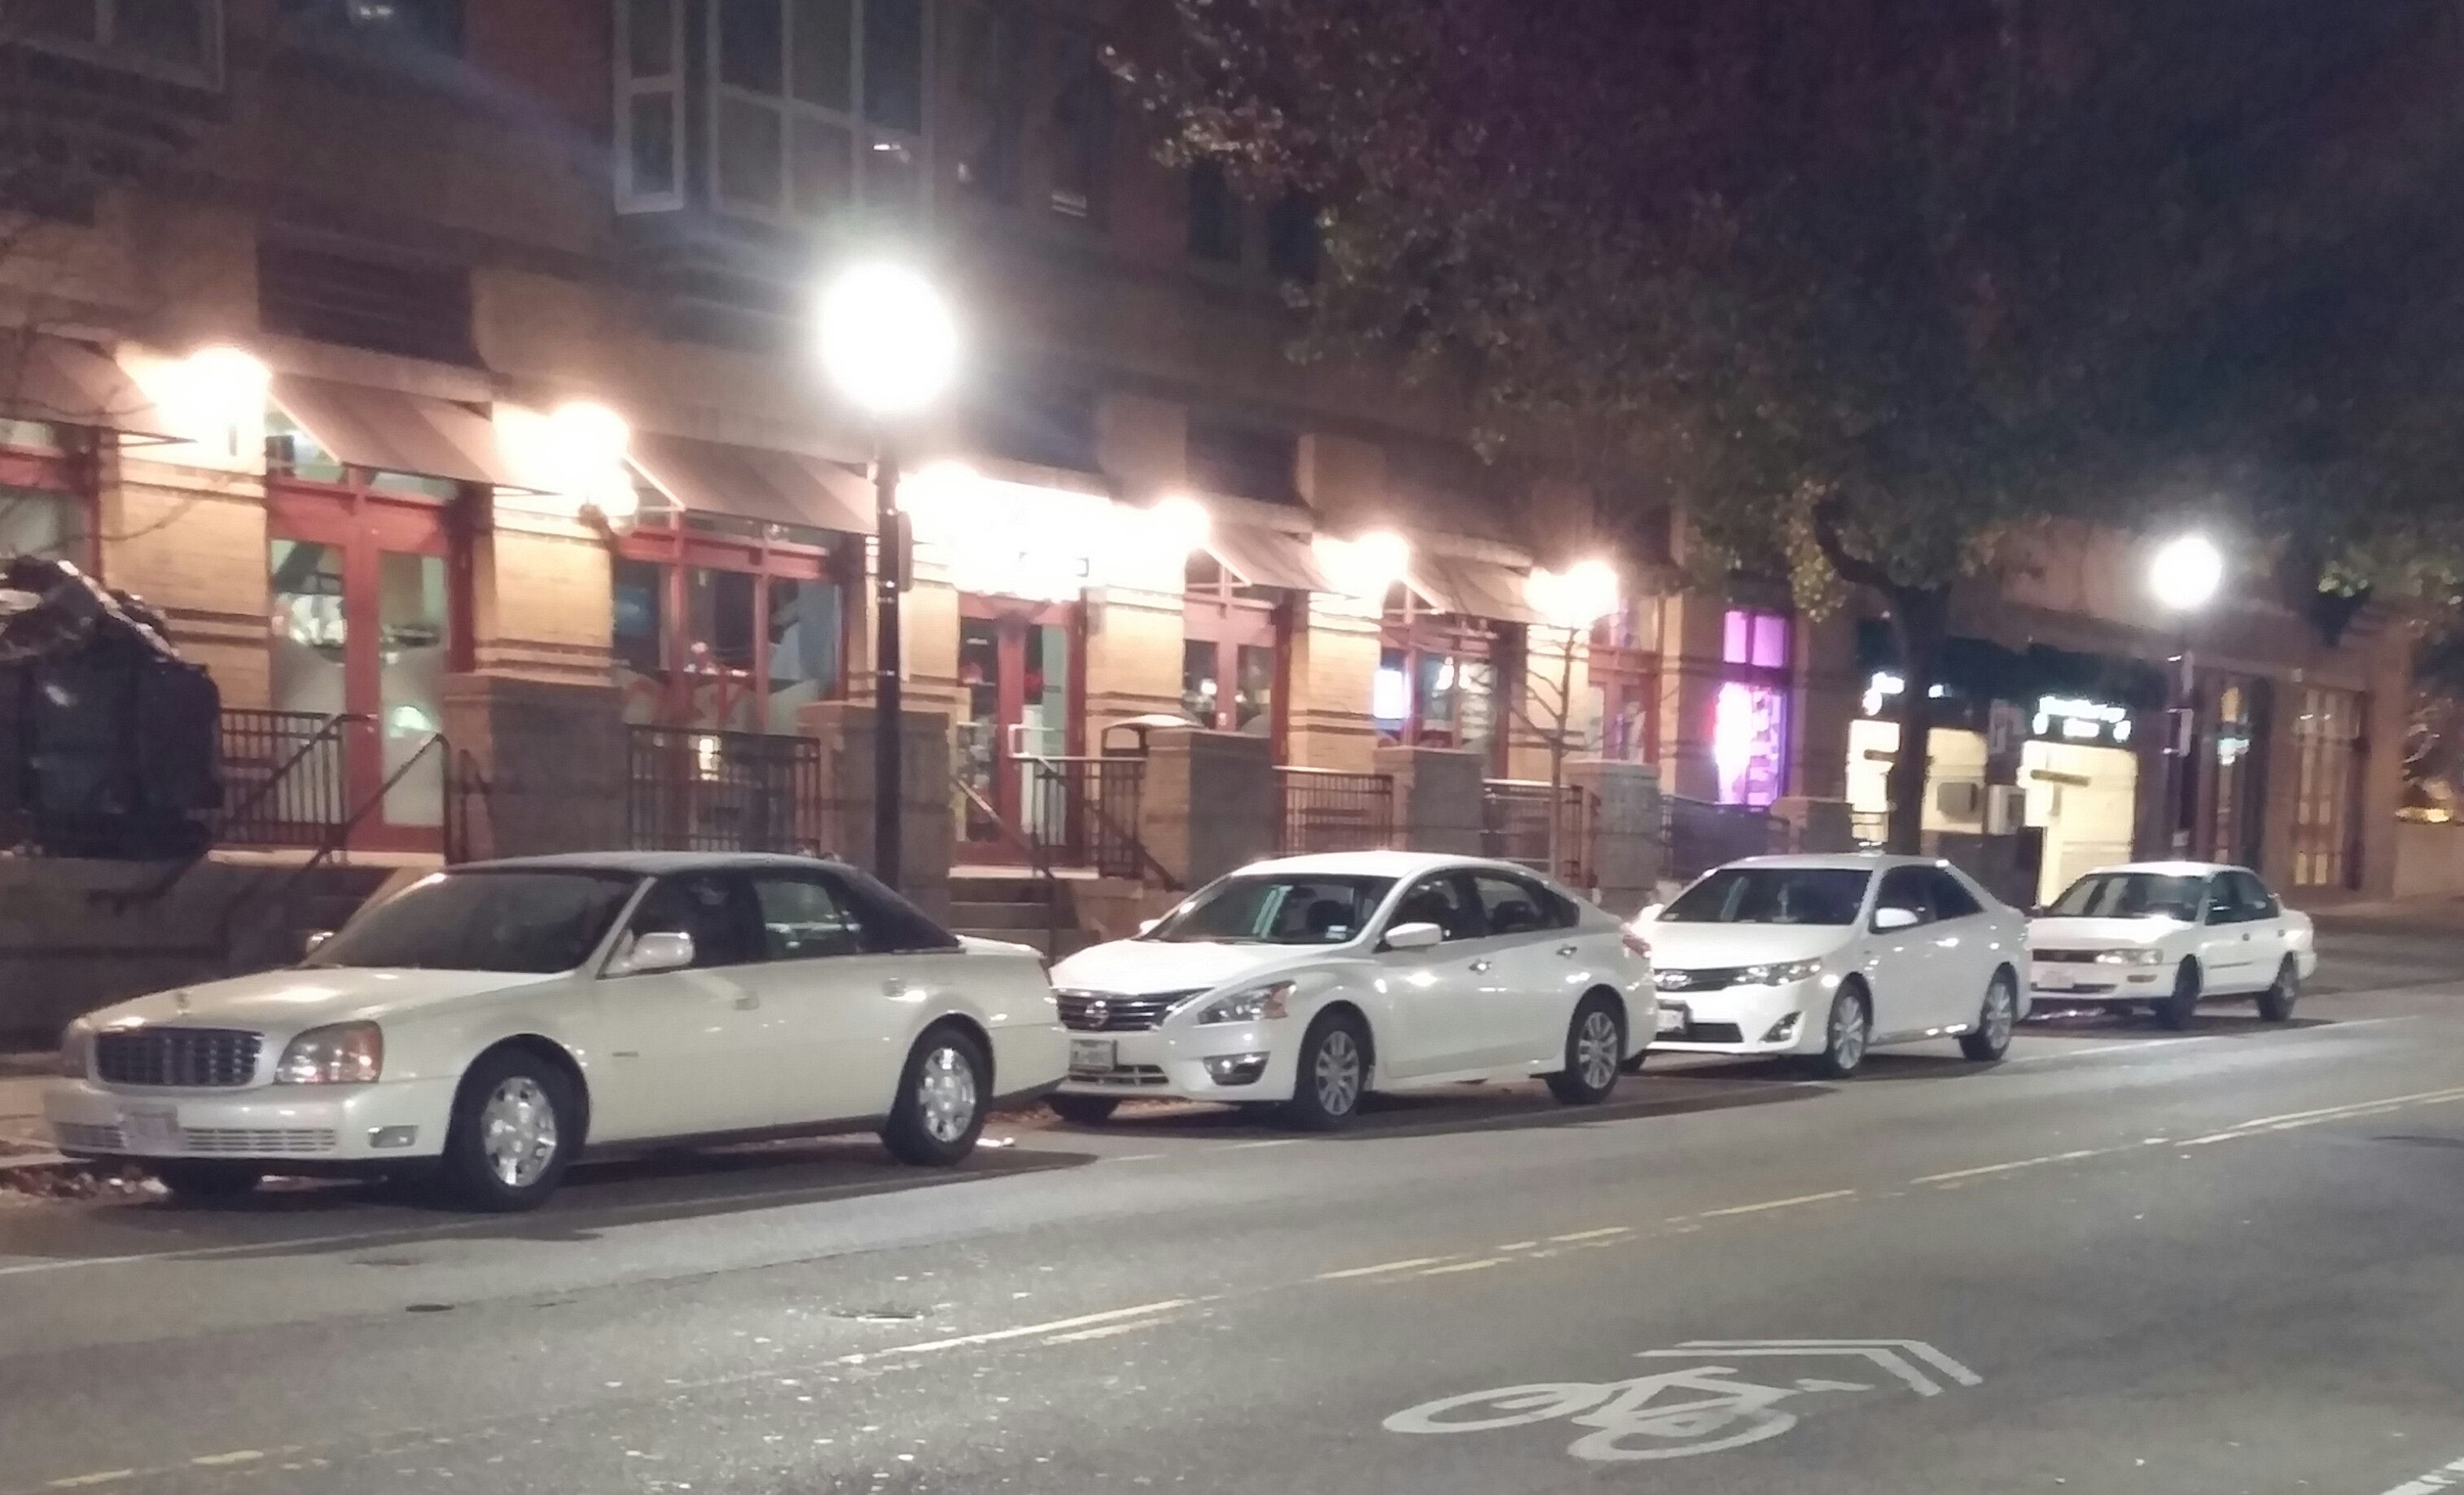 4 white cars in a row, so take your pick